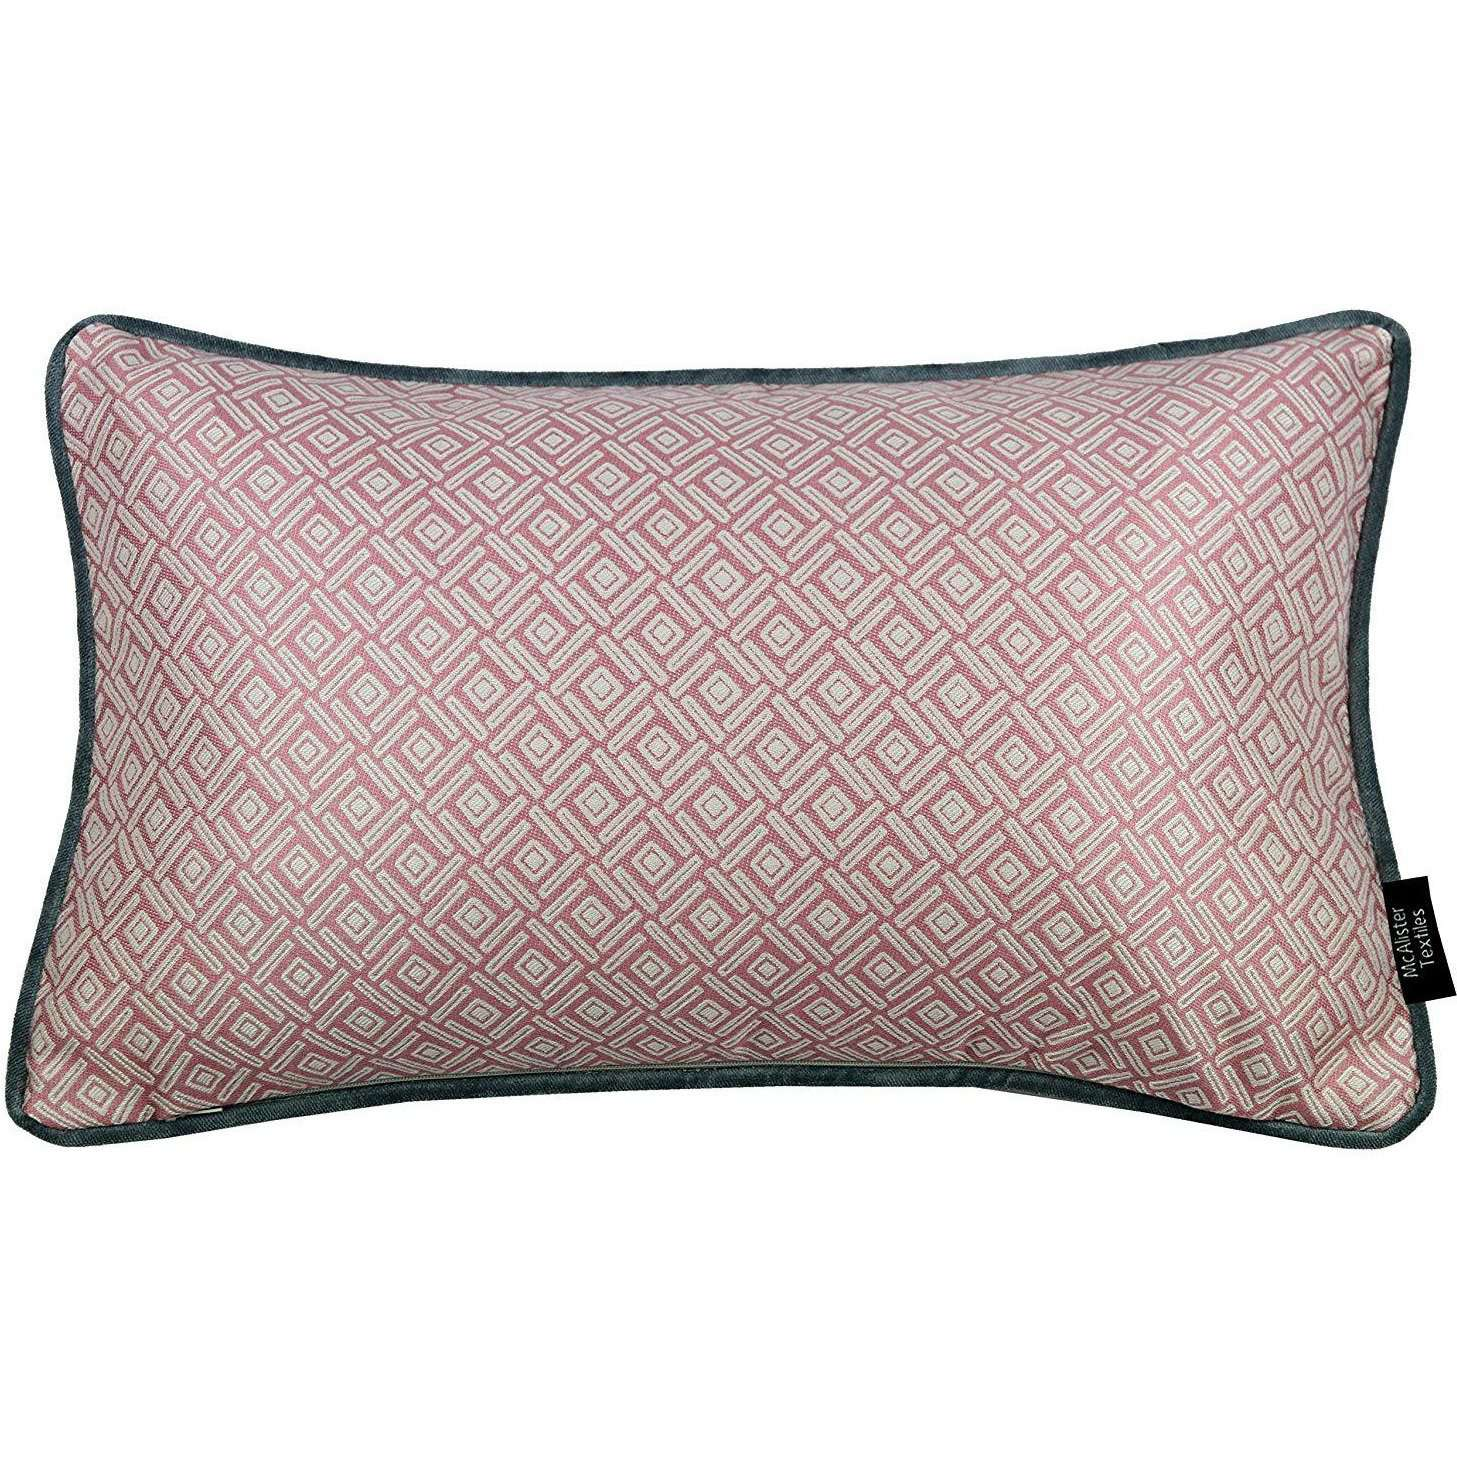 McAlister Textiles Elva Geometric Blush Pink Cushion Cushions and Covers Cover Only 50cm x 30cm